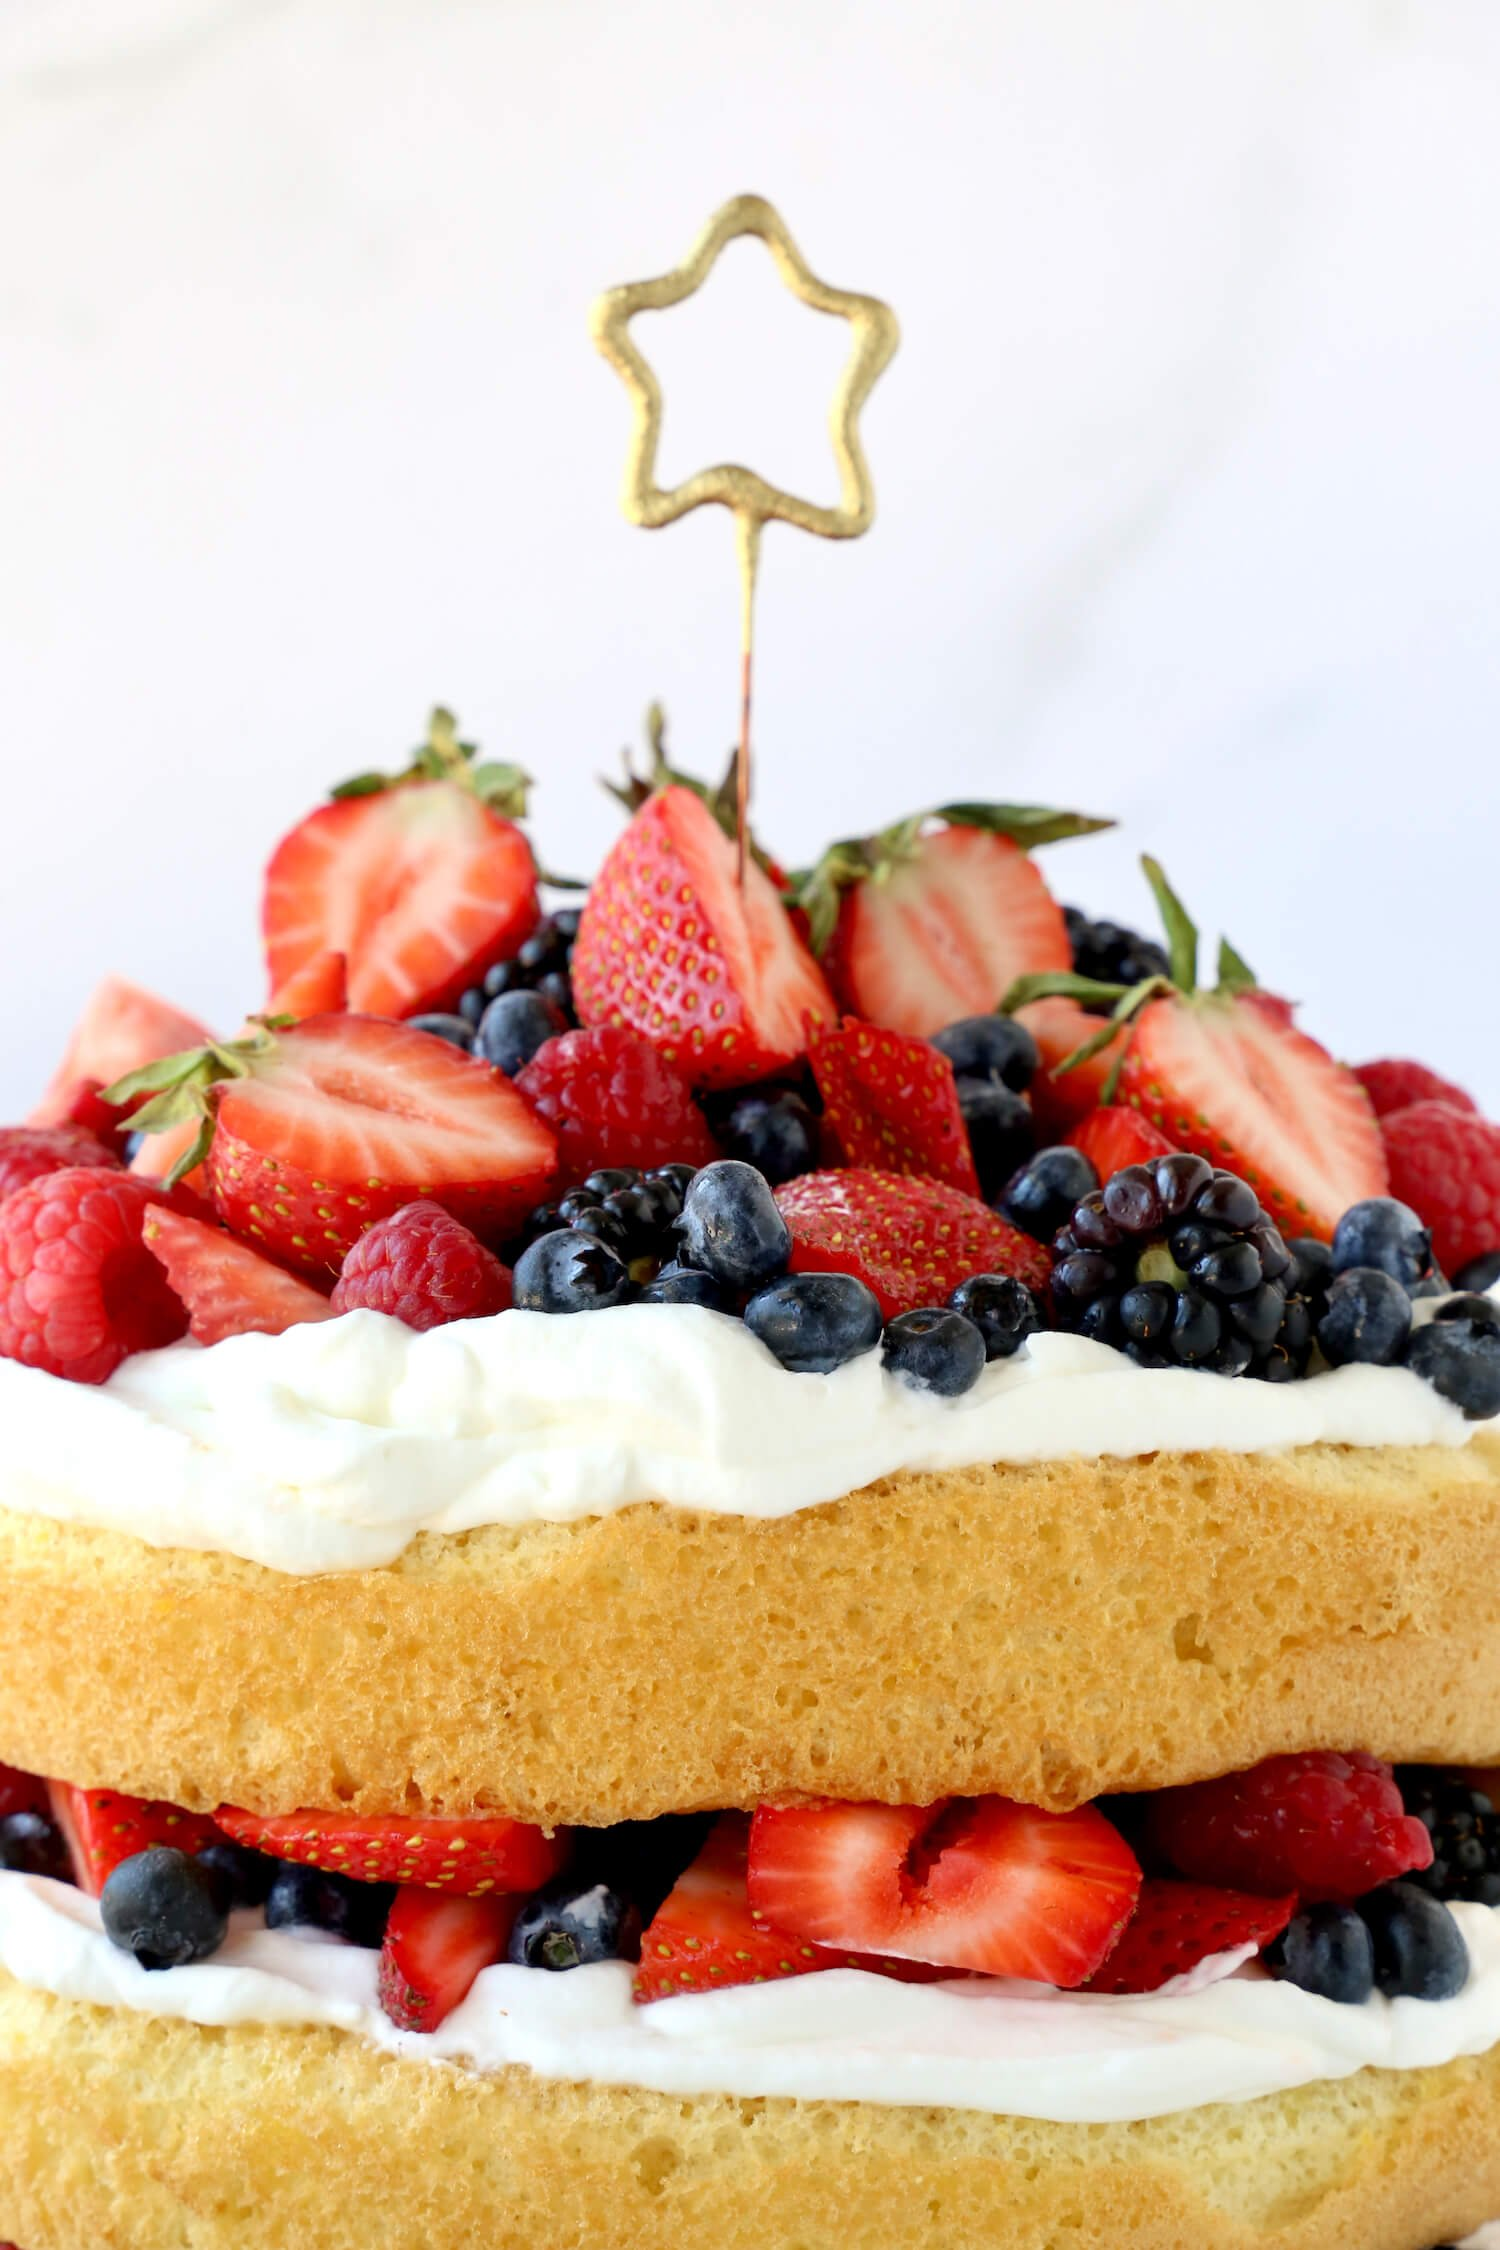 A layer of sponge cake with fresh whipped cream and berries and a star candle.